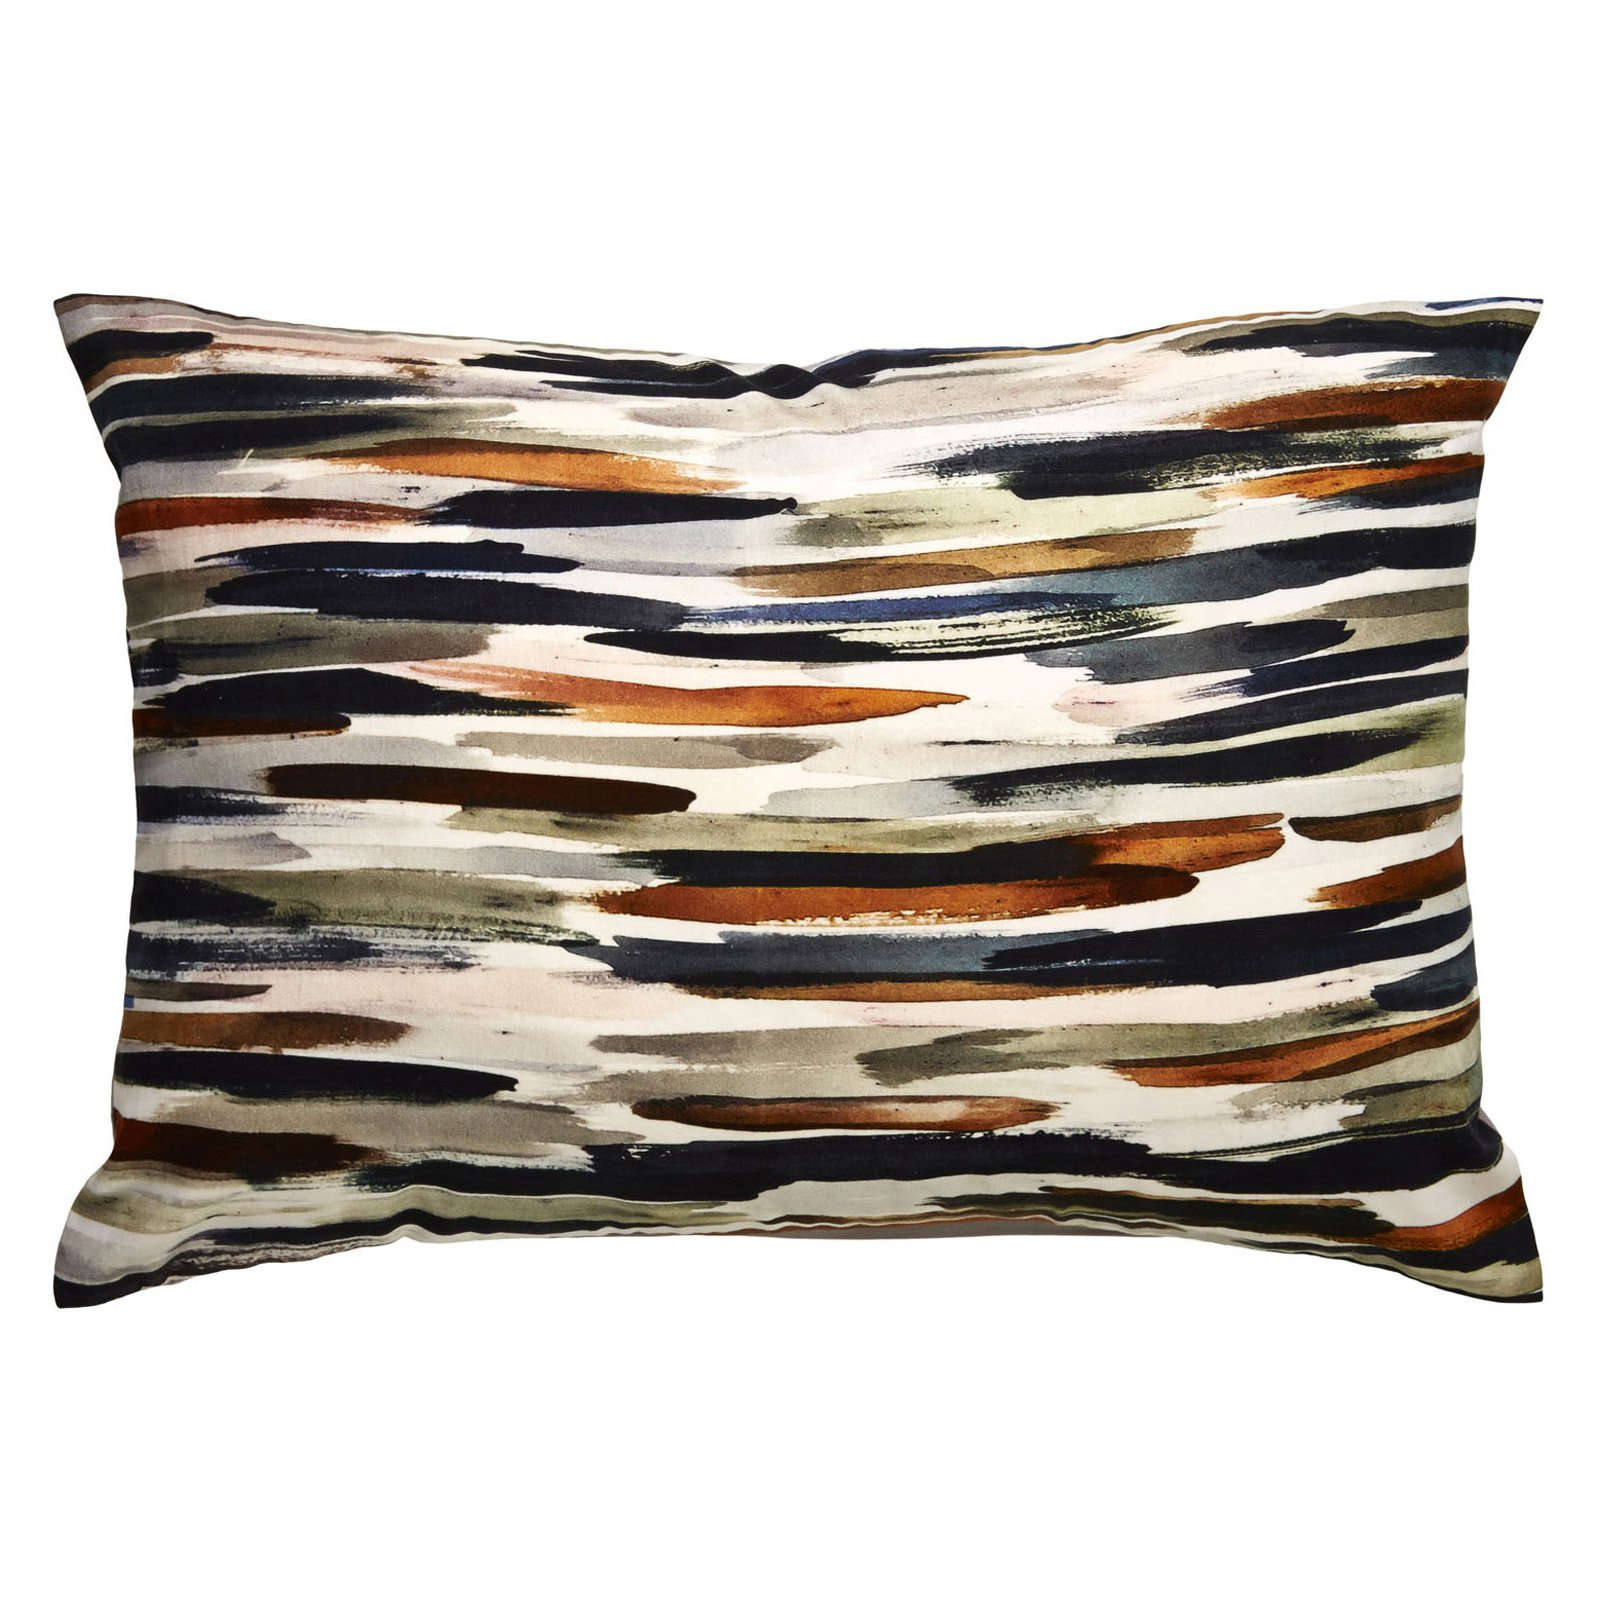 Jaipur Watercolor Cotton and Polyester Decorative Pillow - Ivory / Orange